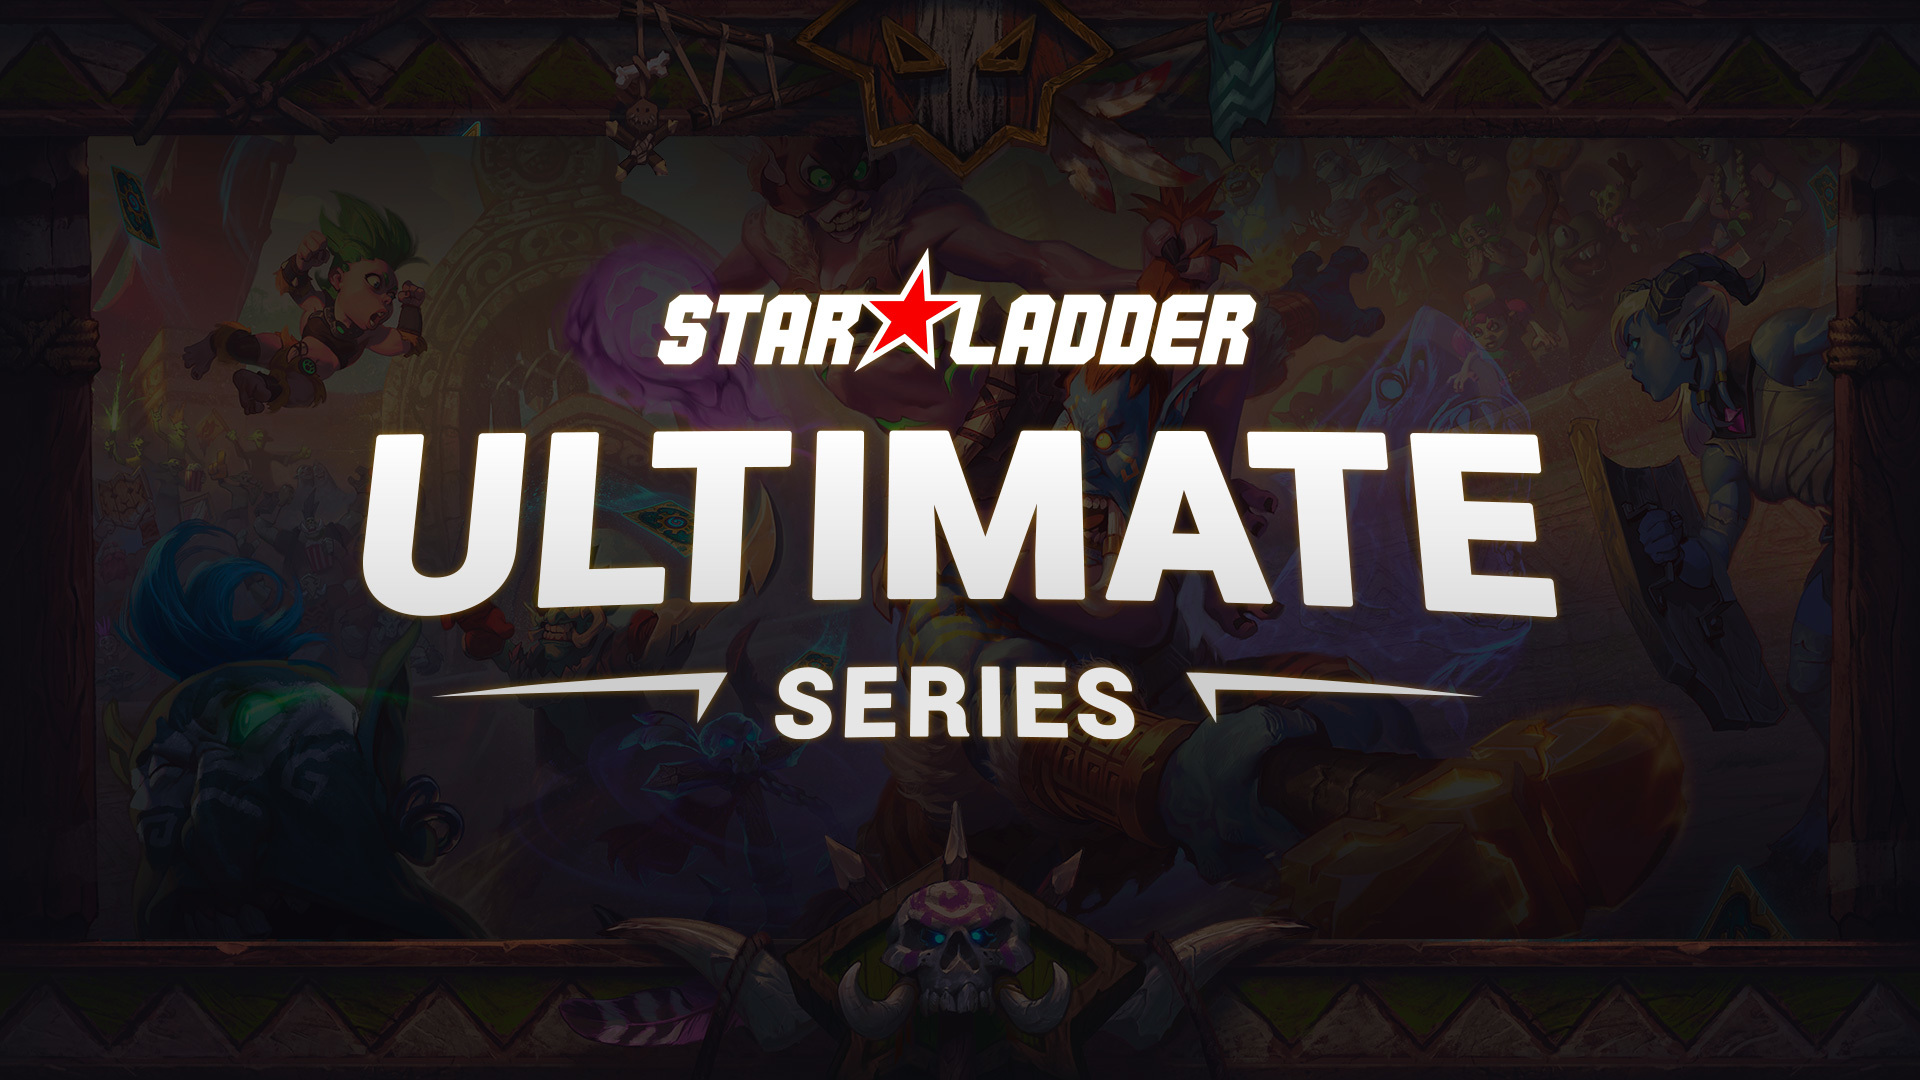 StarLadder to host 4 Hearthstone Ultimate Series tournaments in 2019